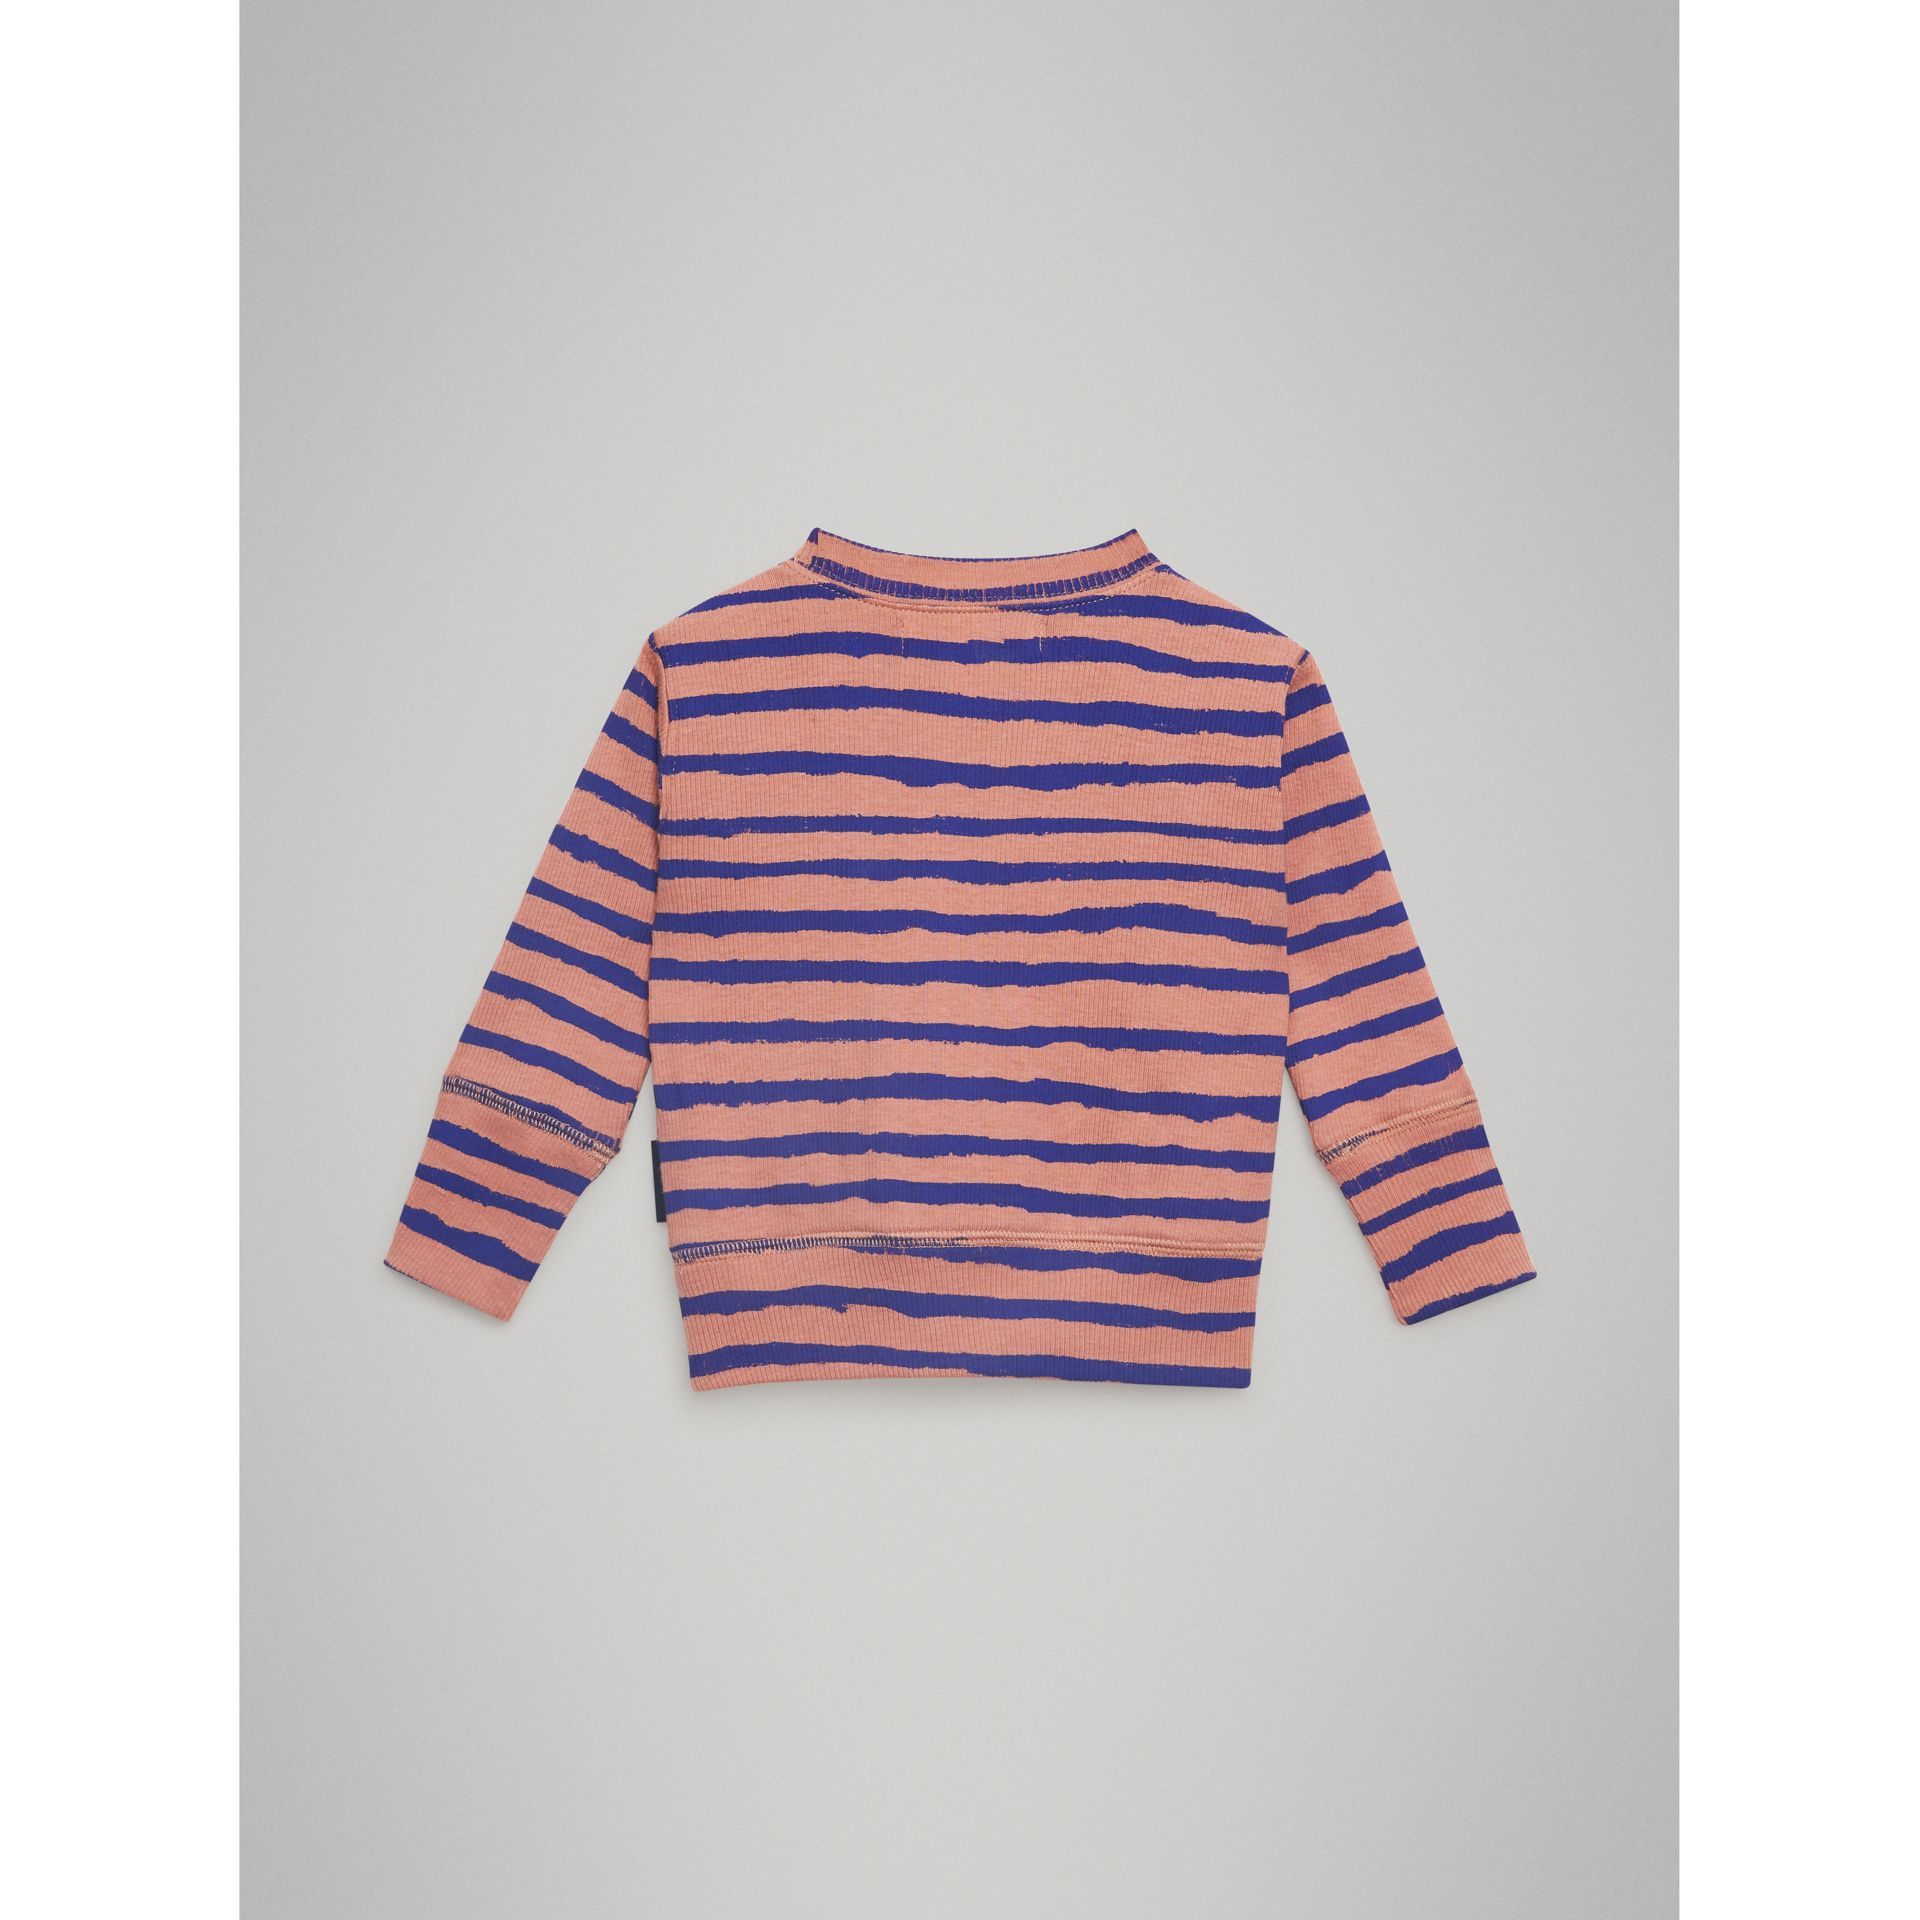 Striped Rib Knit Cotton Sweatshirt in Dusty Pink - Children | Burberry - gallery image 3